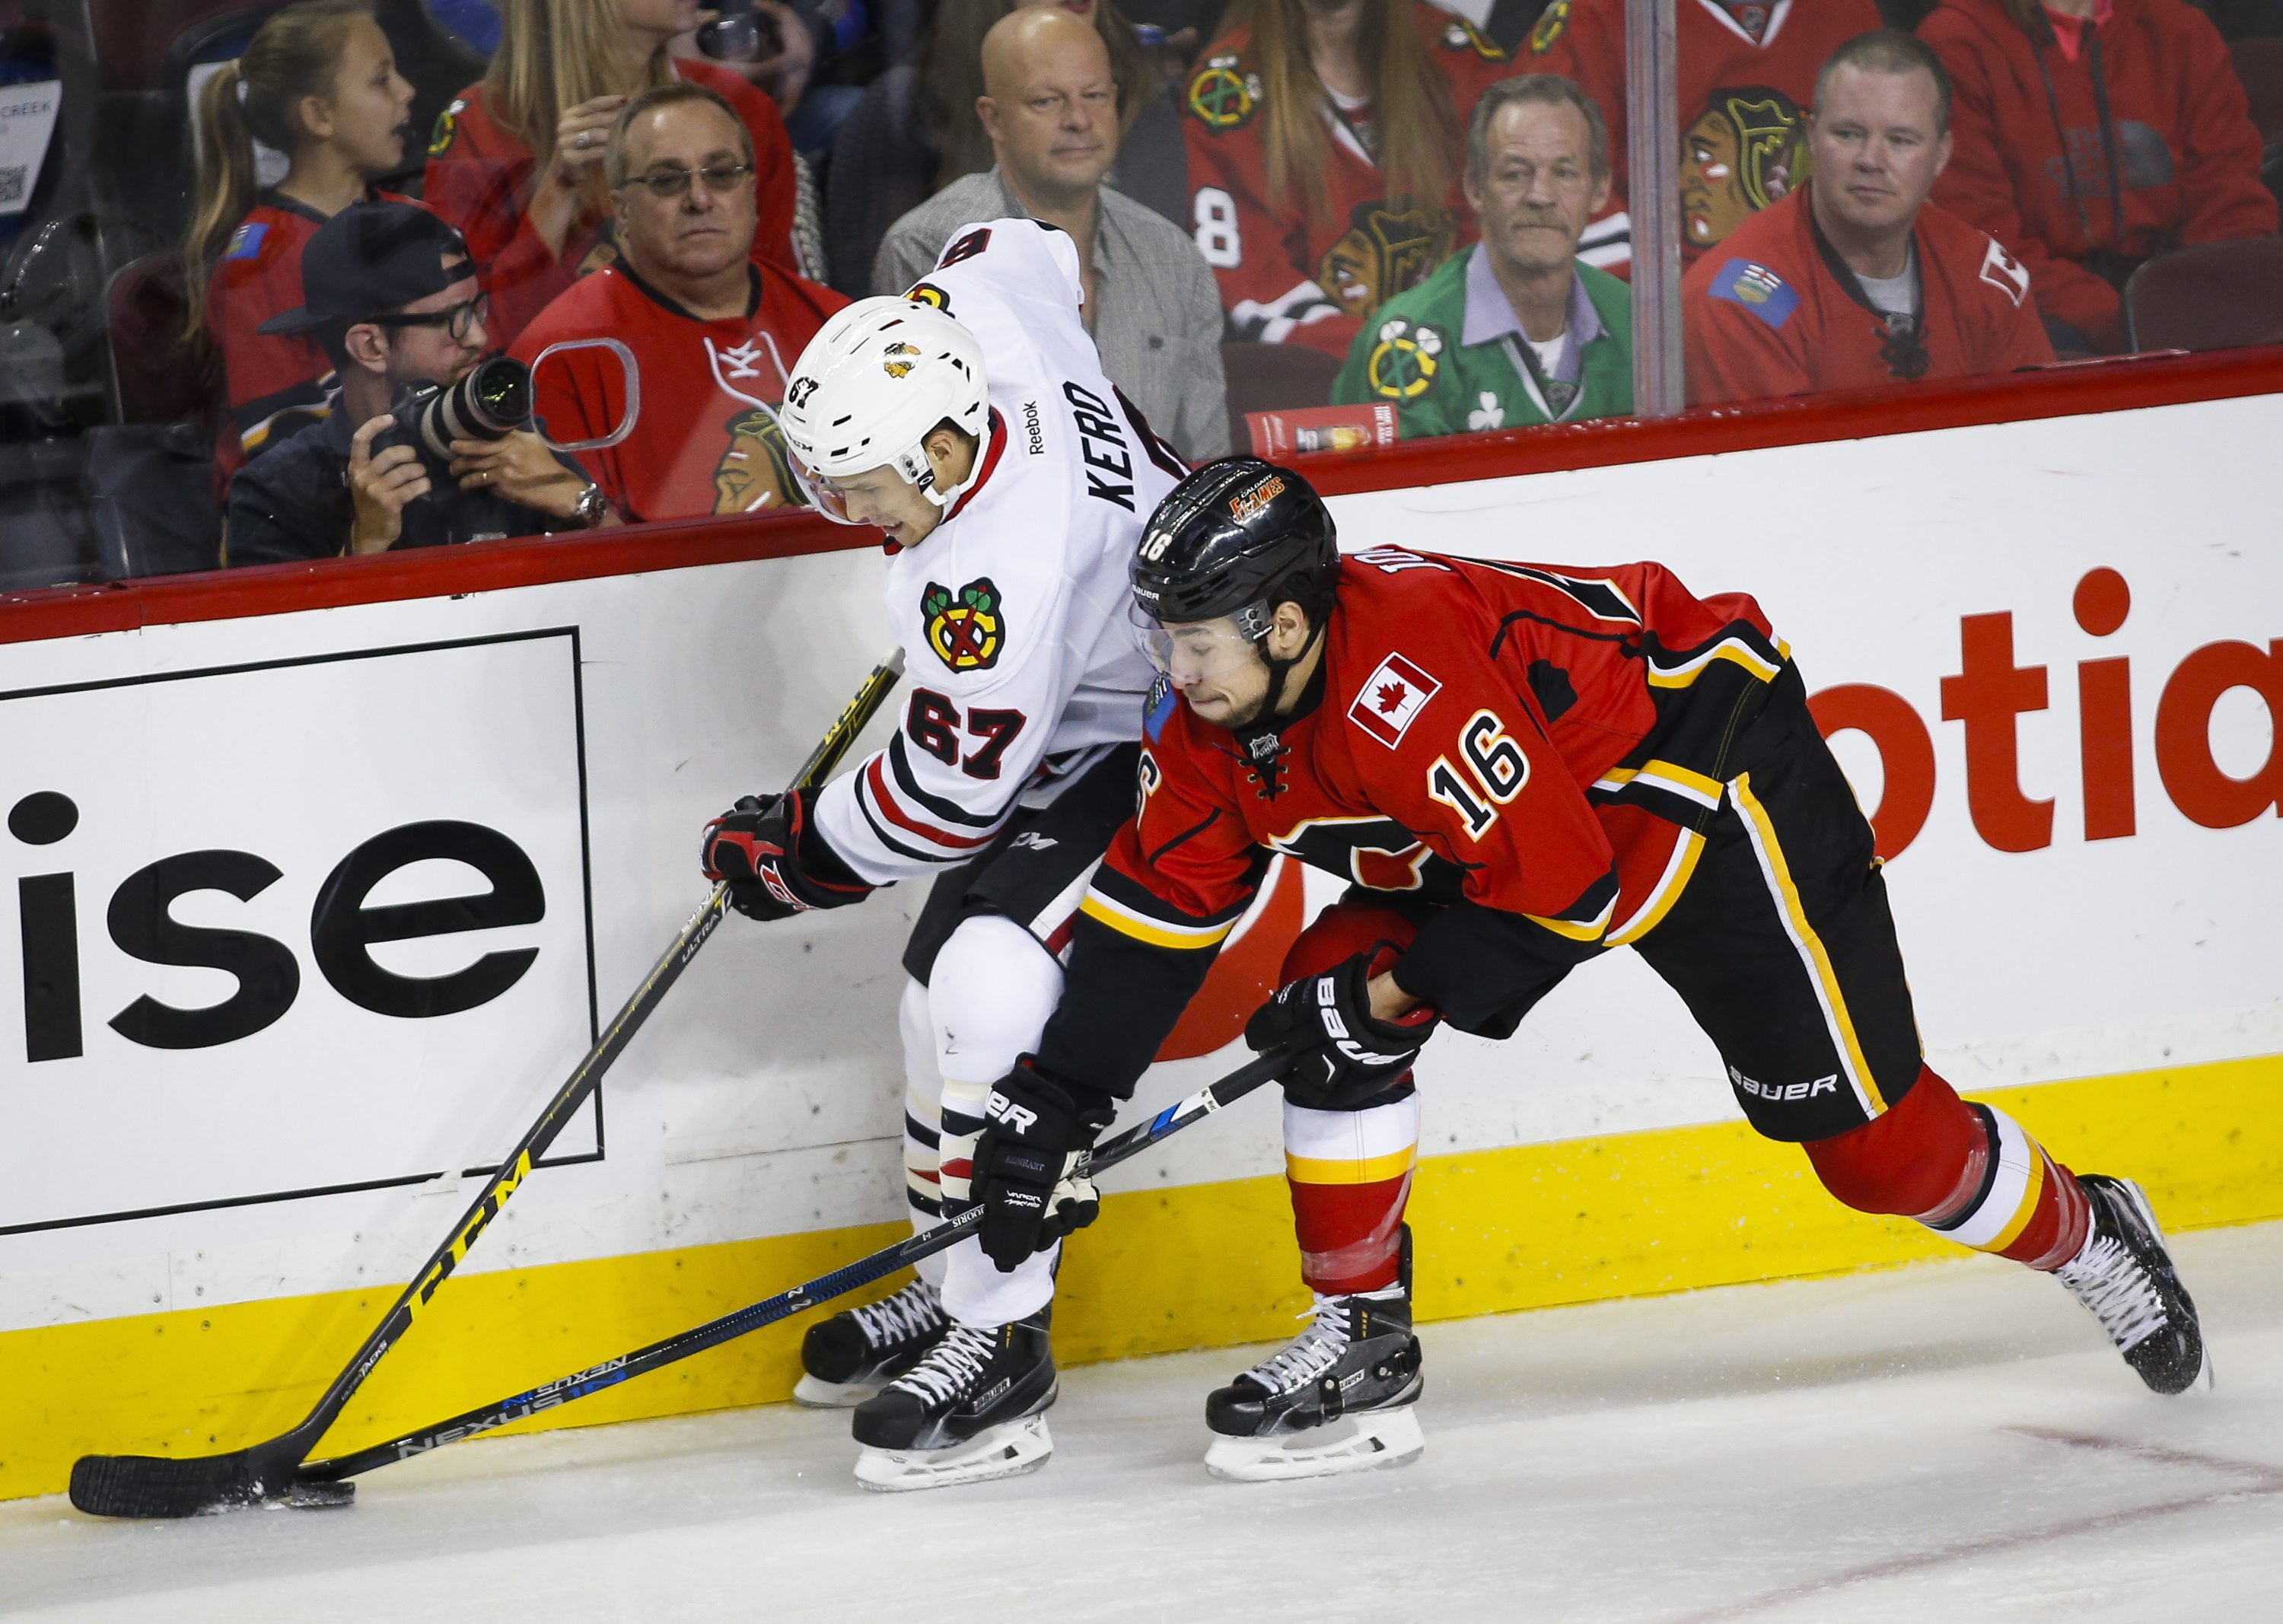 Chicago Blackhawks' Tanner Kero, left, chases the puck with Calgary Flames' Josh Jooris during the first period of an NHL hockey game Friday, Nov. 20, 2015, in Calgary, Alberta. (Jeff McIntosh/The Canadian Press via AP)